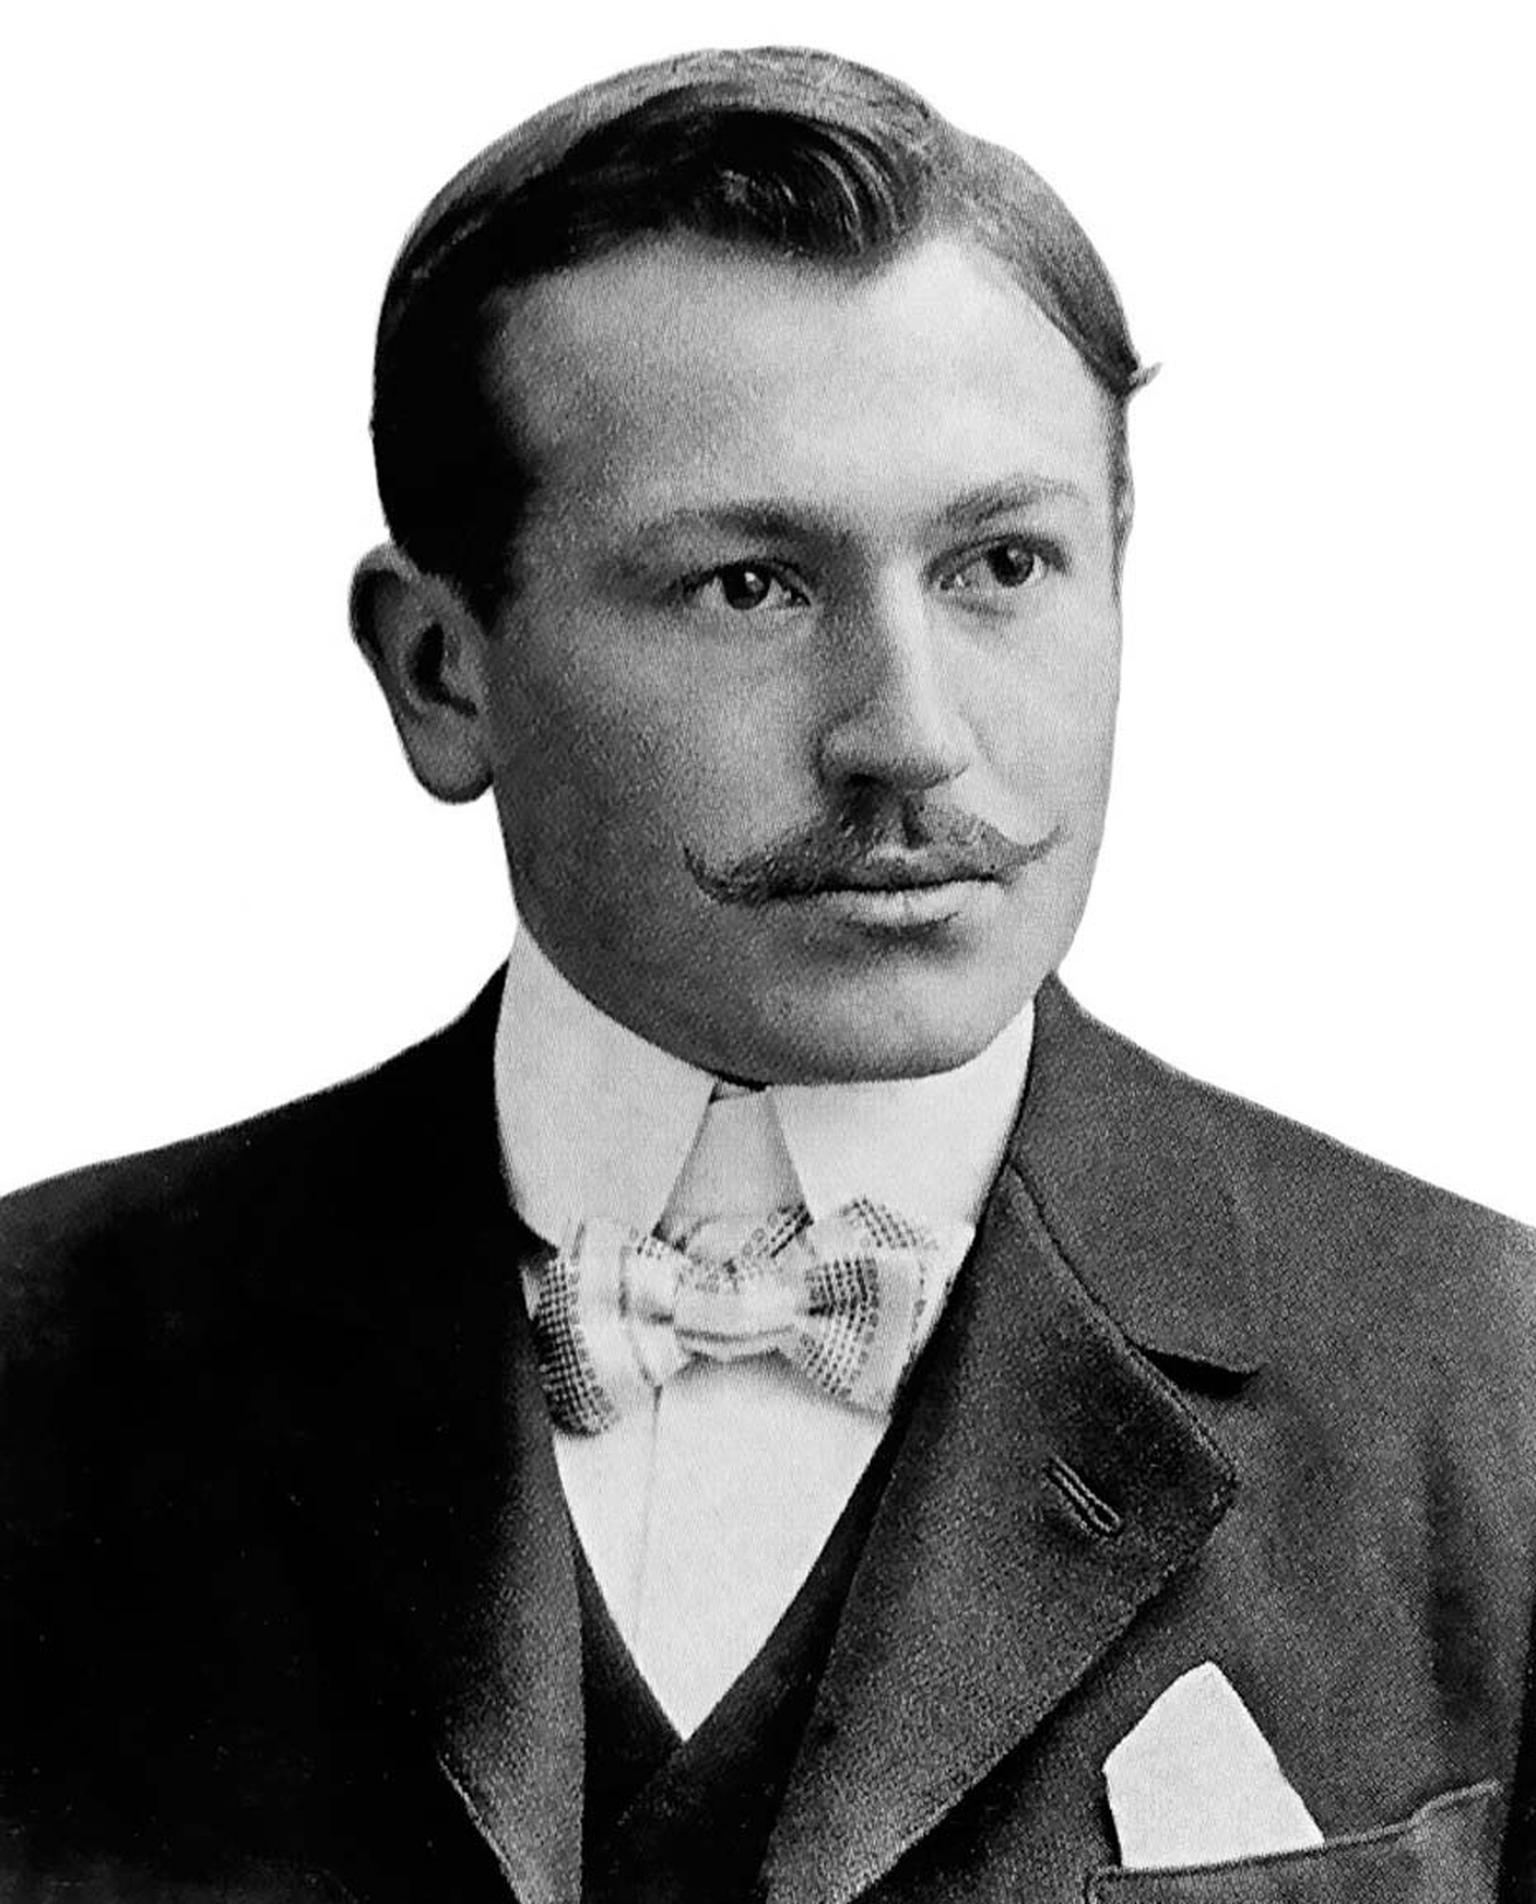 Hans Wilhelm Wilsdorf (1881-1960) was the founder of Rolex watches. Contrary to popular belief, Rolex was not originally a Swiss company, its founder was not a watchmaker by profession or, for that matter, Swiss and the company had its roots in London.